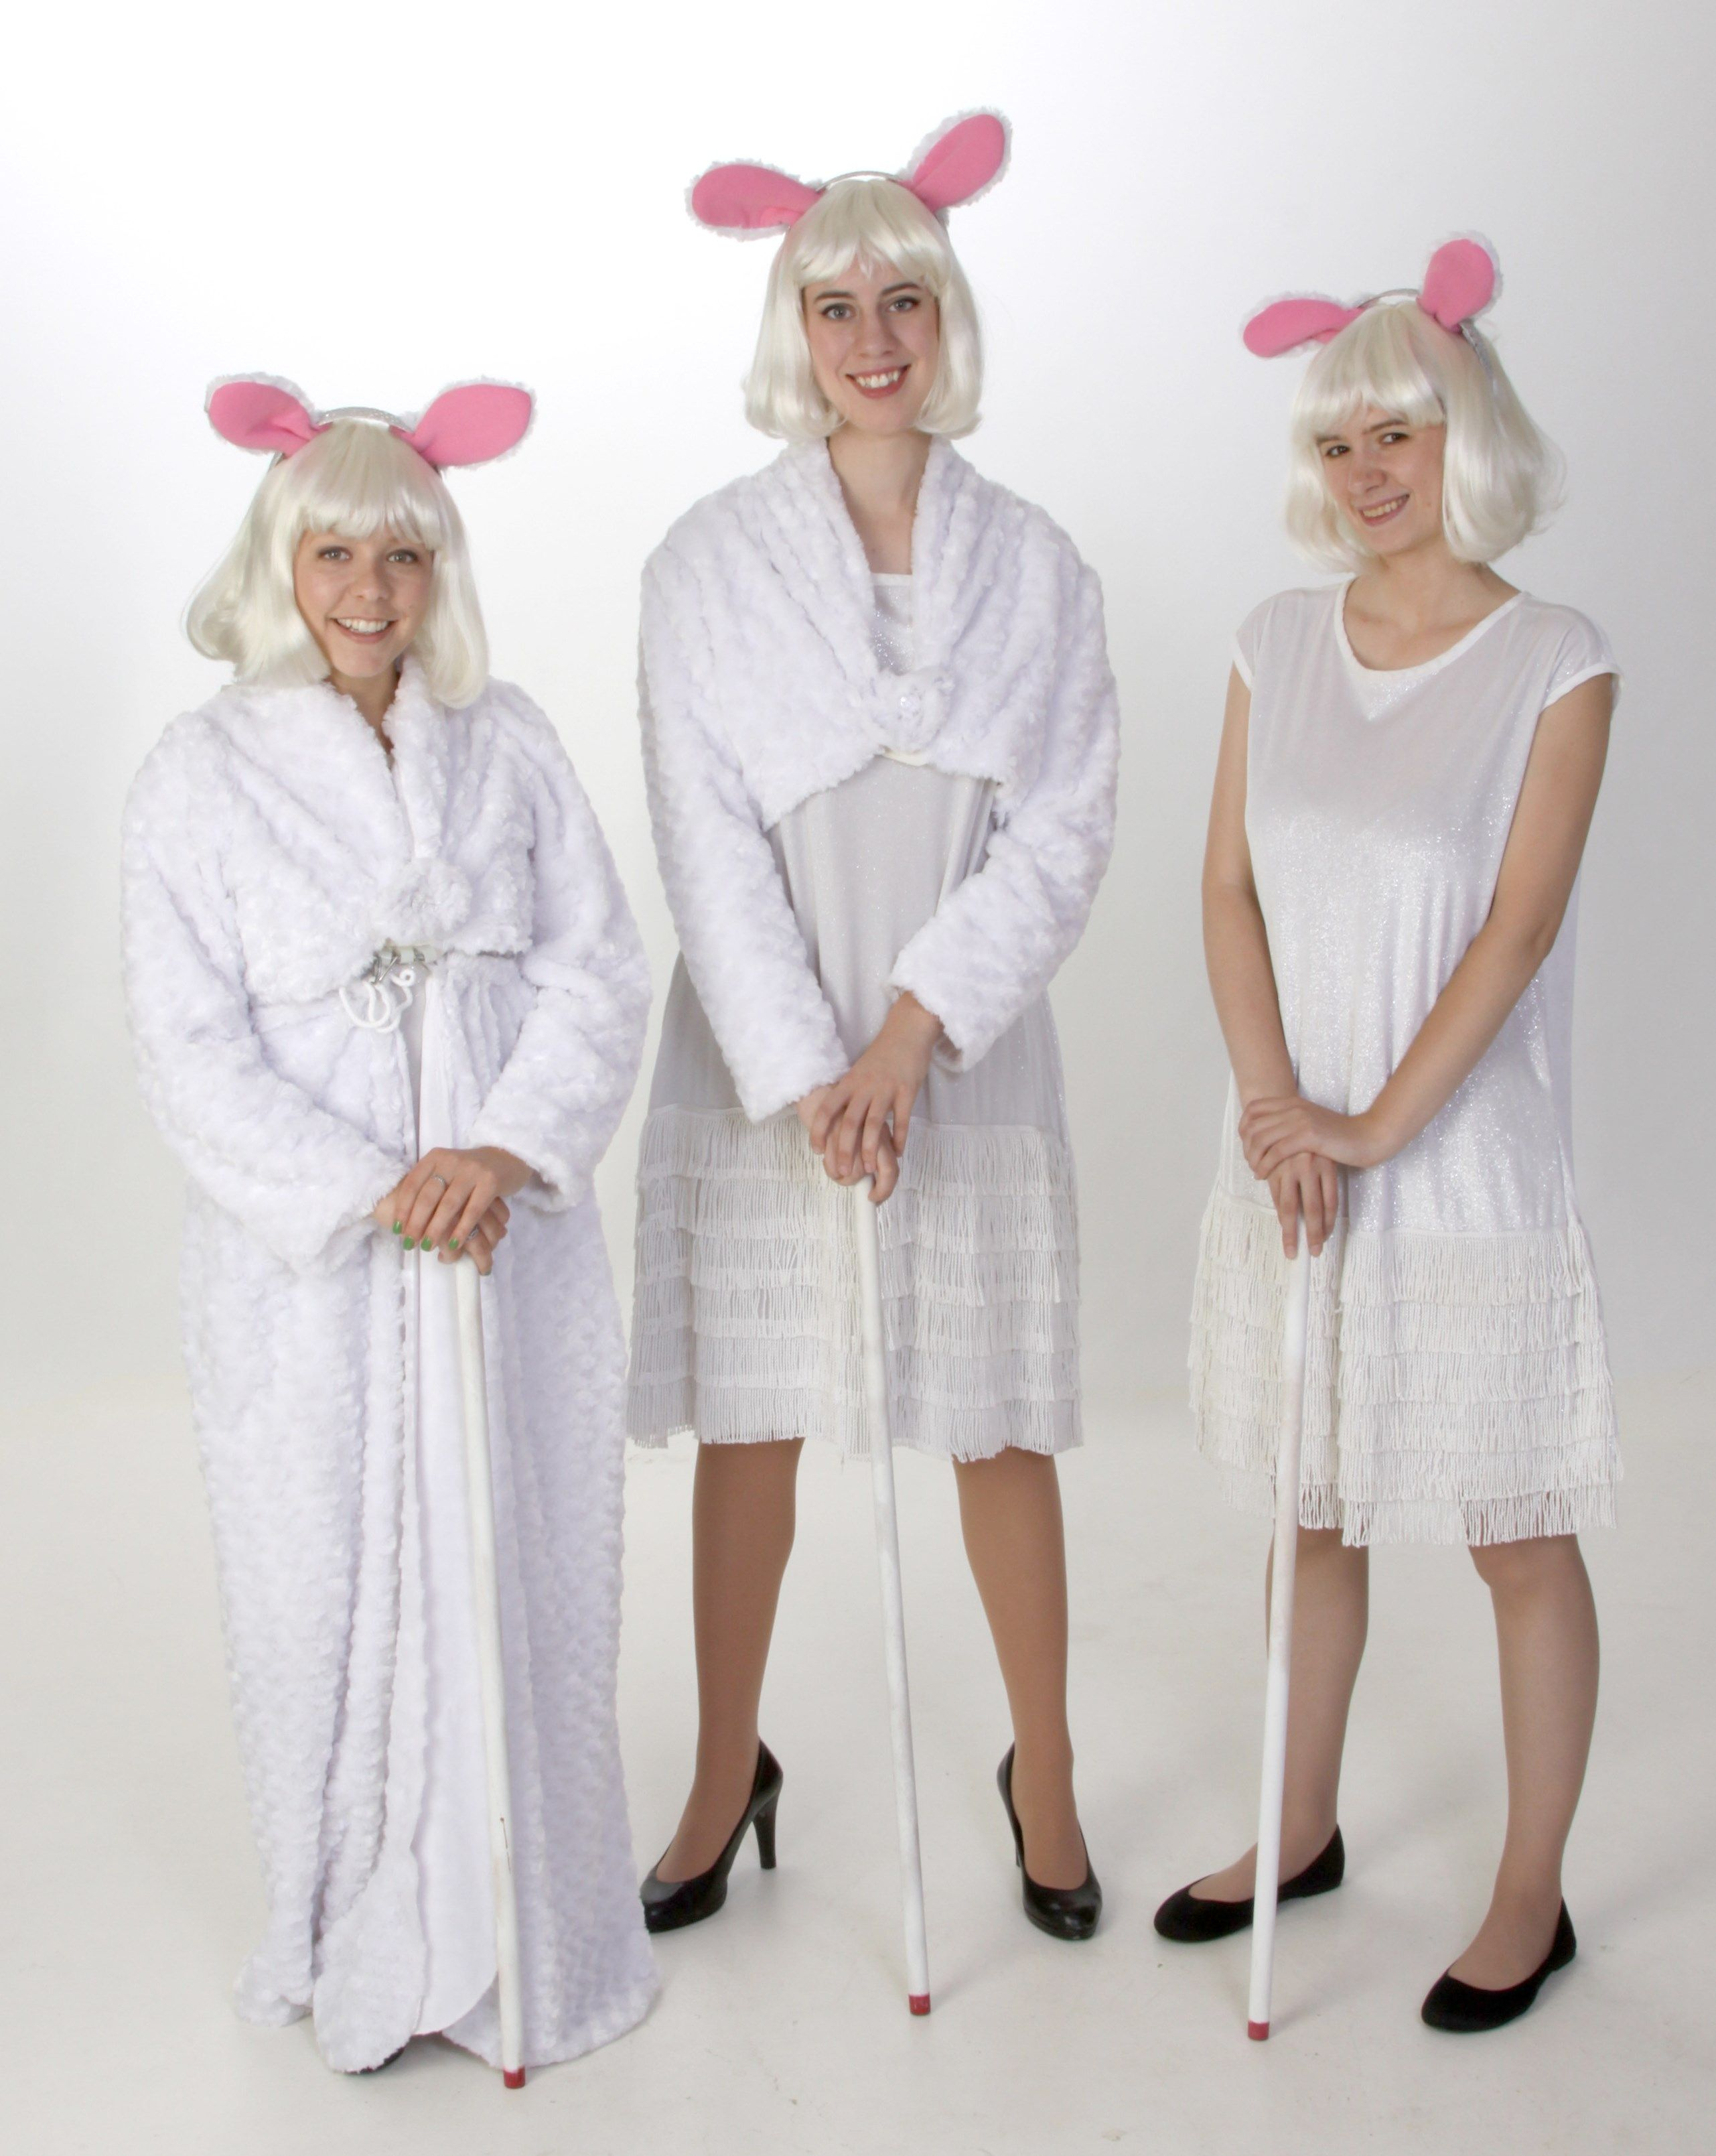 Three Blind Mice Costume Shrek Rental From 39 75 Per Costume Mouse Costume Three Blind Mice Costume Shrek Costume